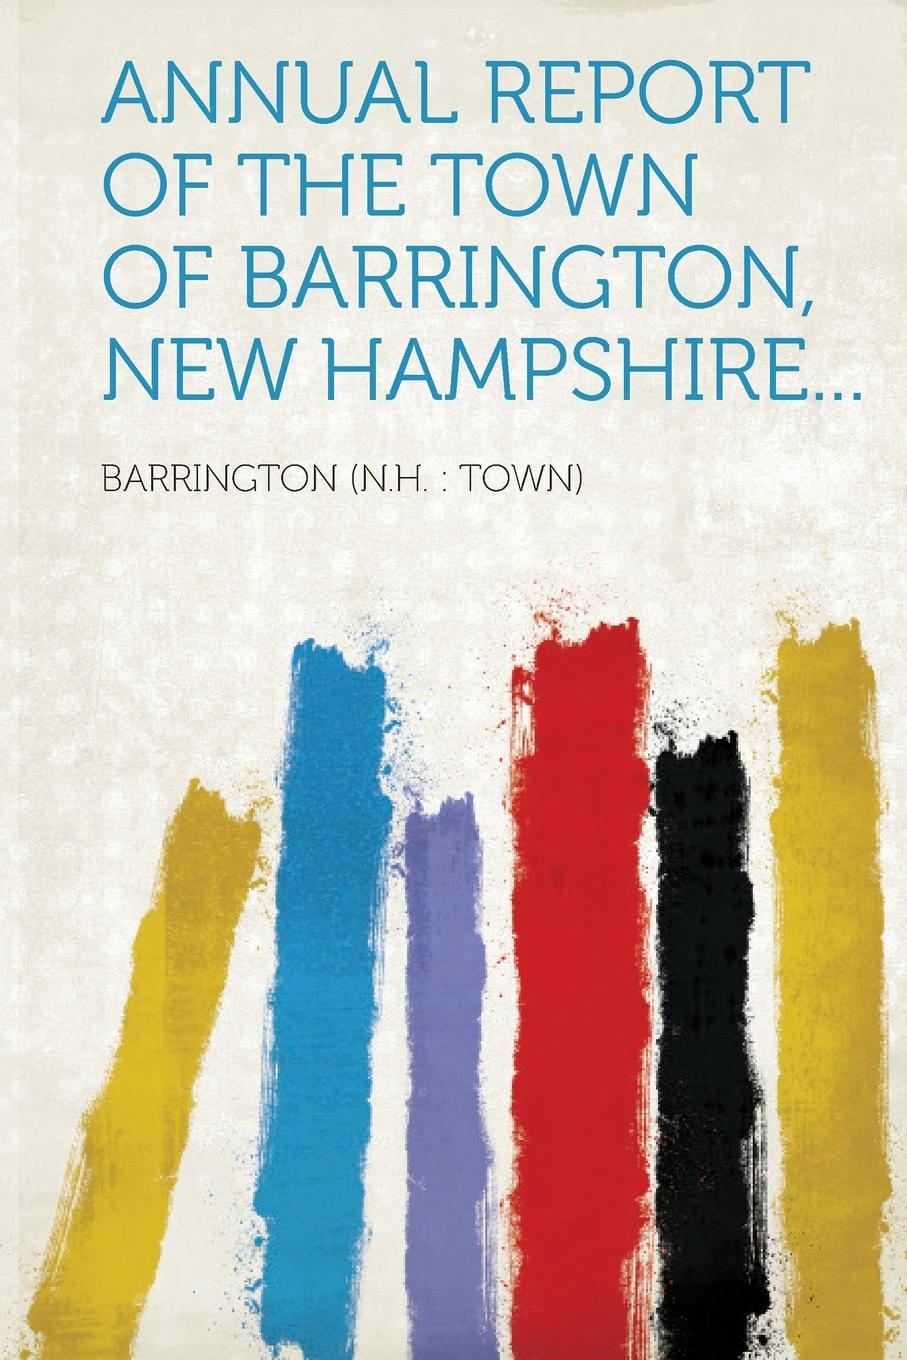 Annual report of the Town of Barrington, New Hampshire...